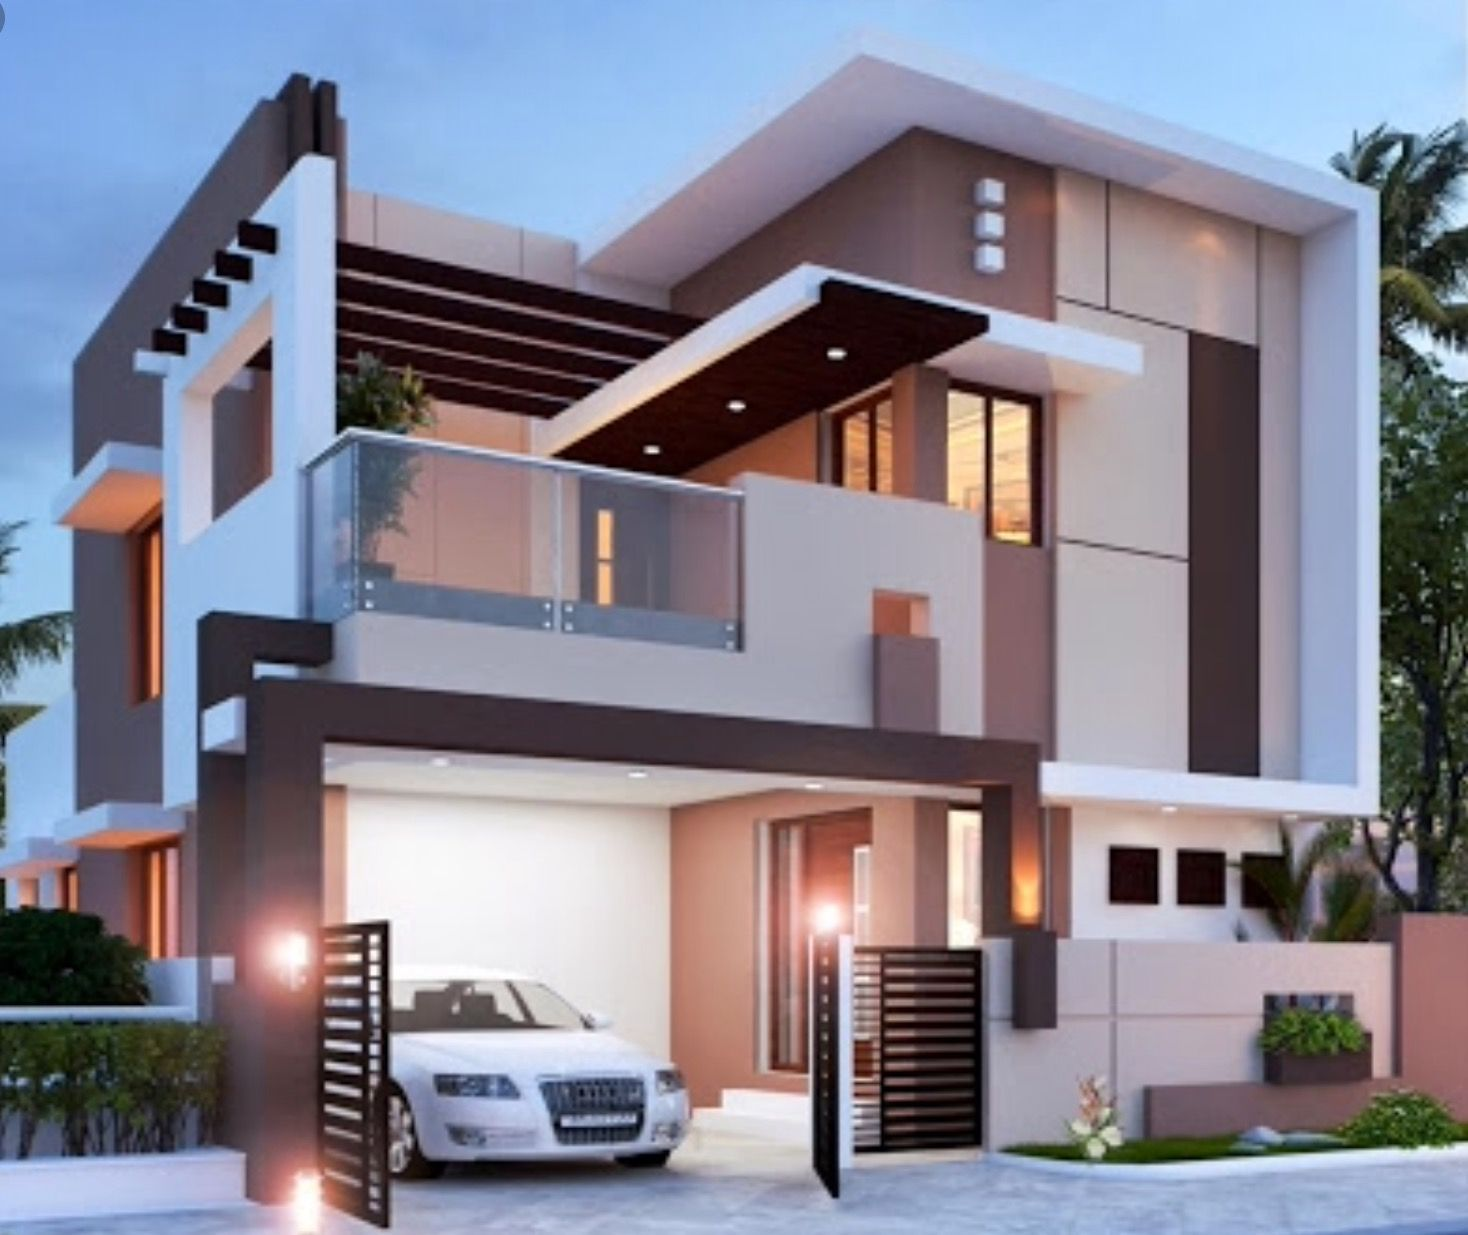 21 The Most Unique Modern Home Design In The World New Duplex House Design Cool House Designs Minimalist House Design